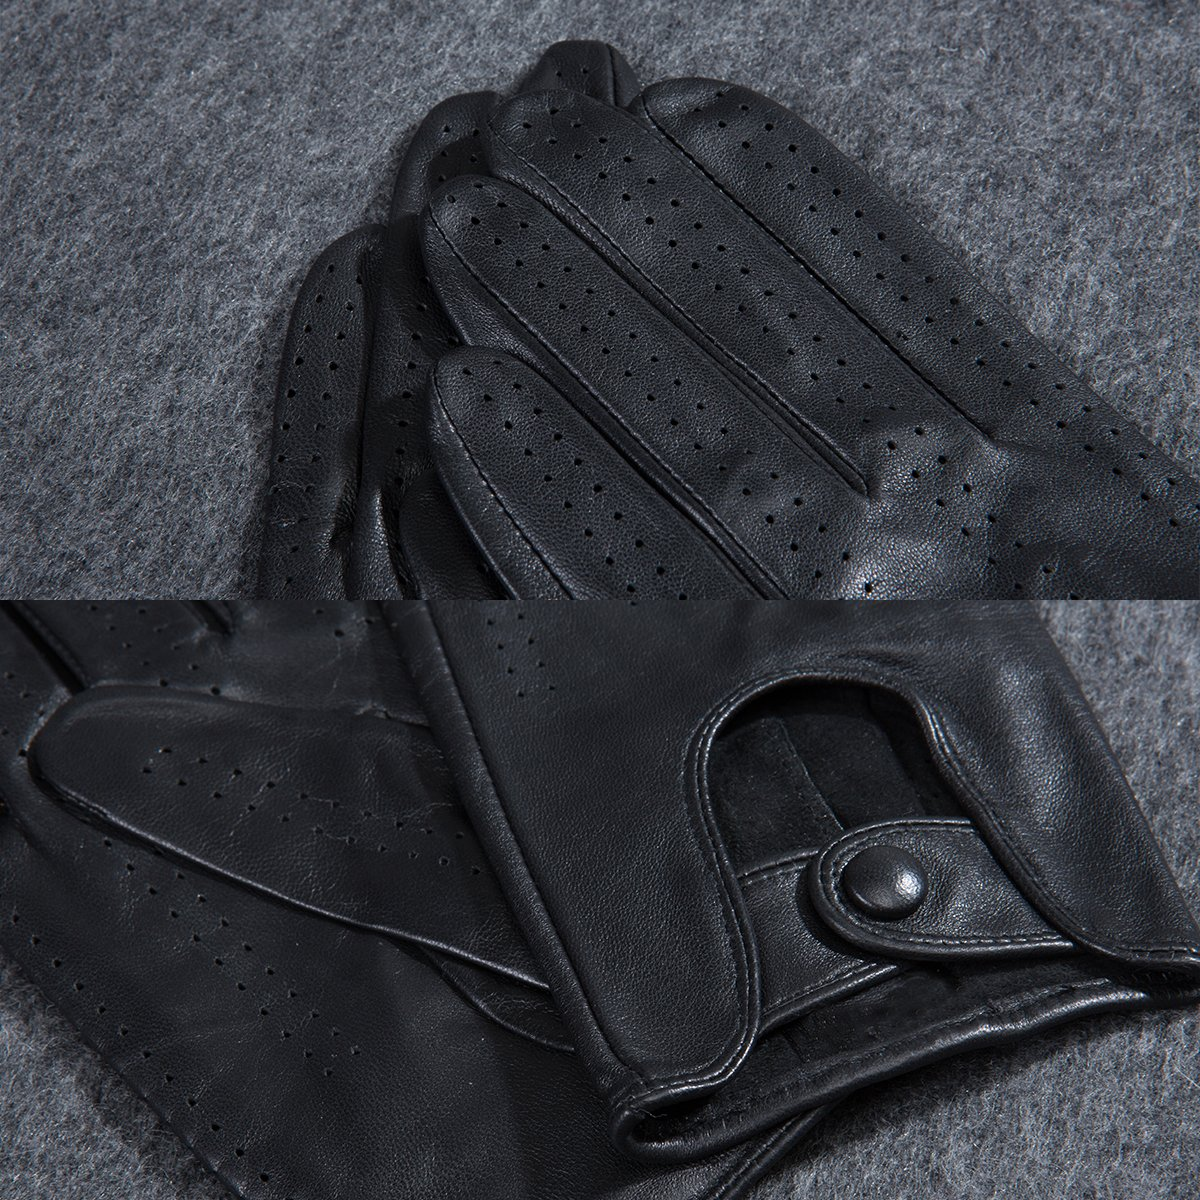 MATSU Classic Women Driving Touchscreen Lambskin Leather Gloves Available for Rivets DIY #9237 (XL, Black) by Matsu Gloves (Image #6)